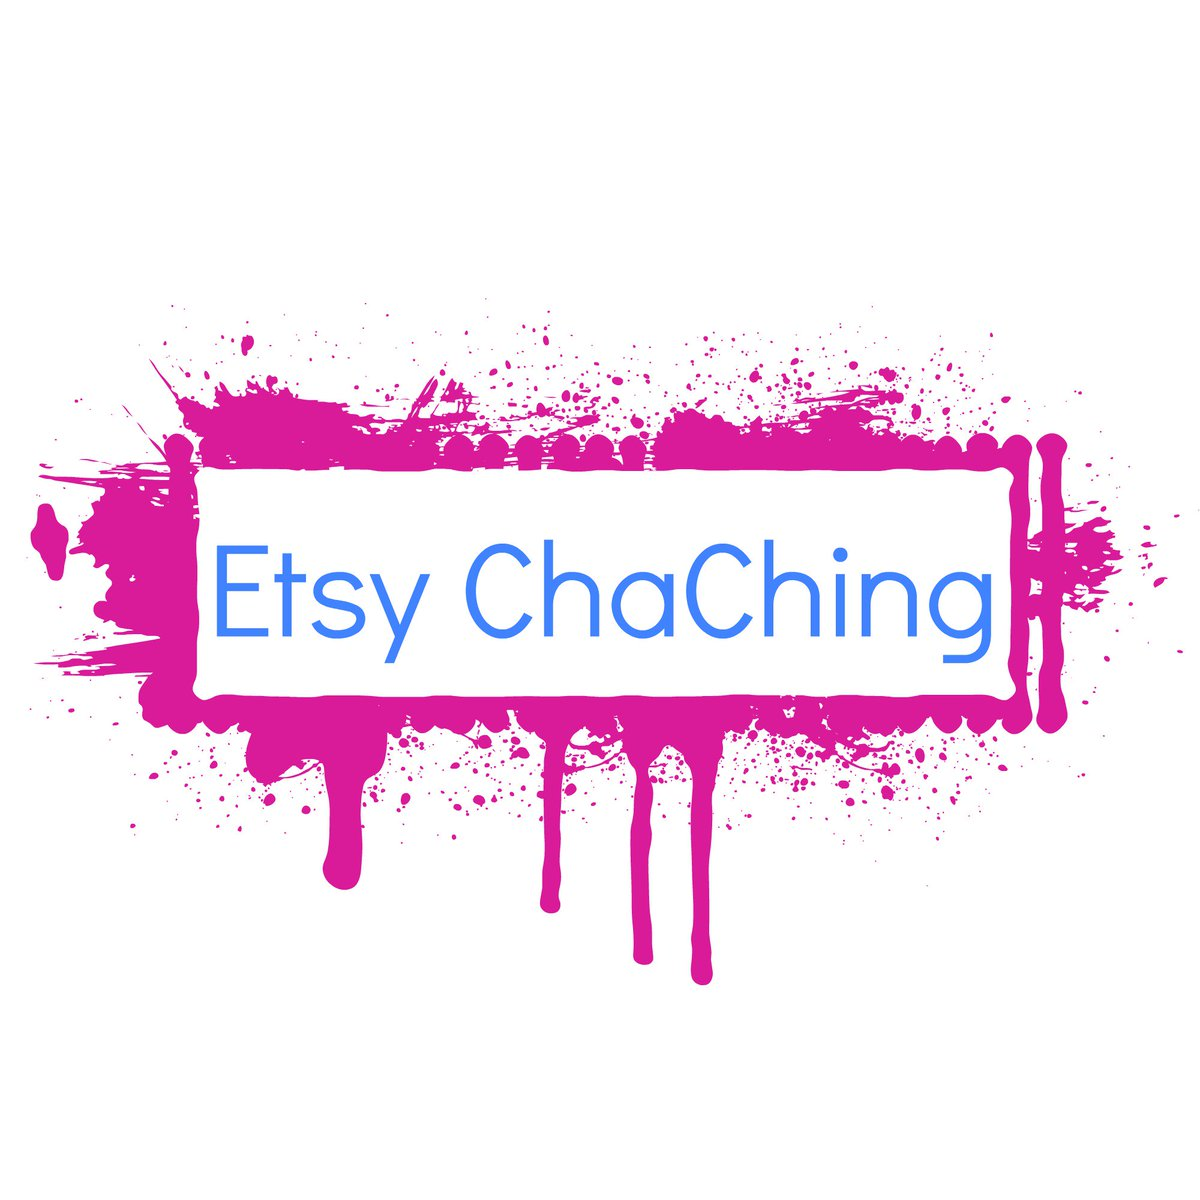 Follow our #etsychaching FB page! https://www. facebook.com/etsychaching/  &nbsp;   #epiconetsy #shoppershour #craftshout #etsy #handmadehour #craftbuzz #crafthour<br>http://pic.twitter.com/G7LIUb9vd3